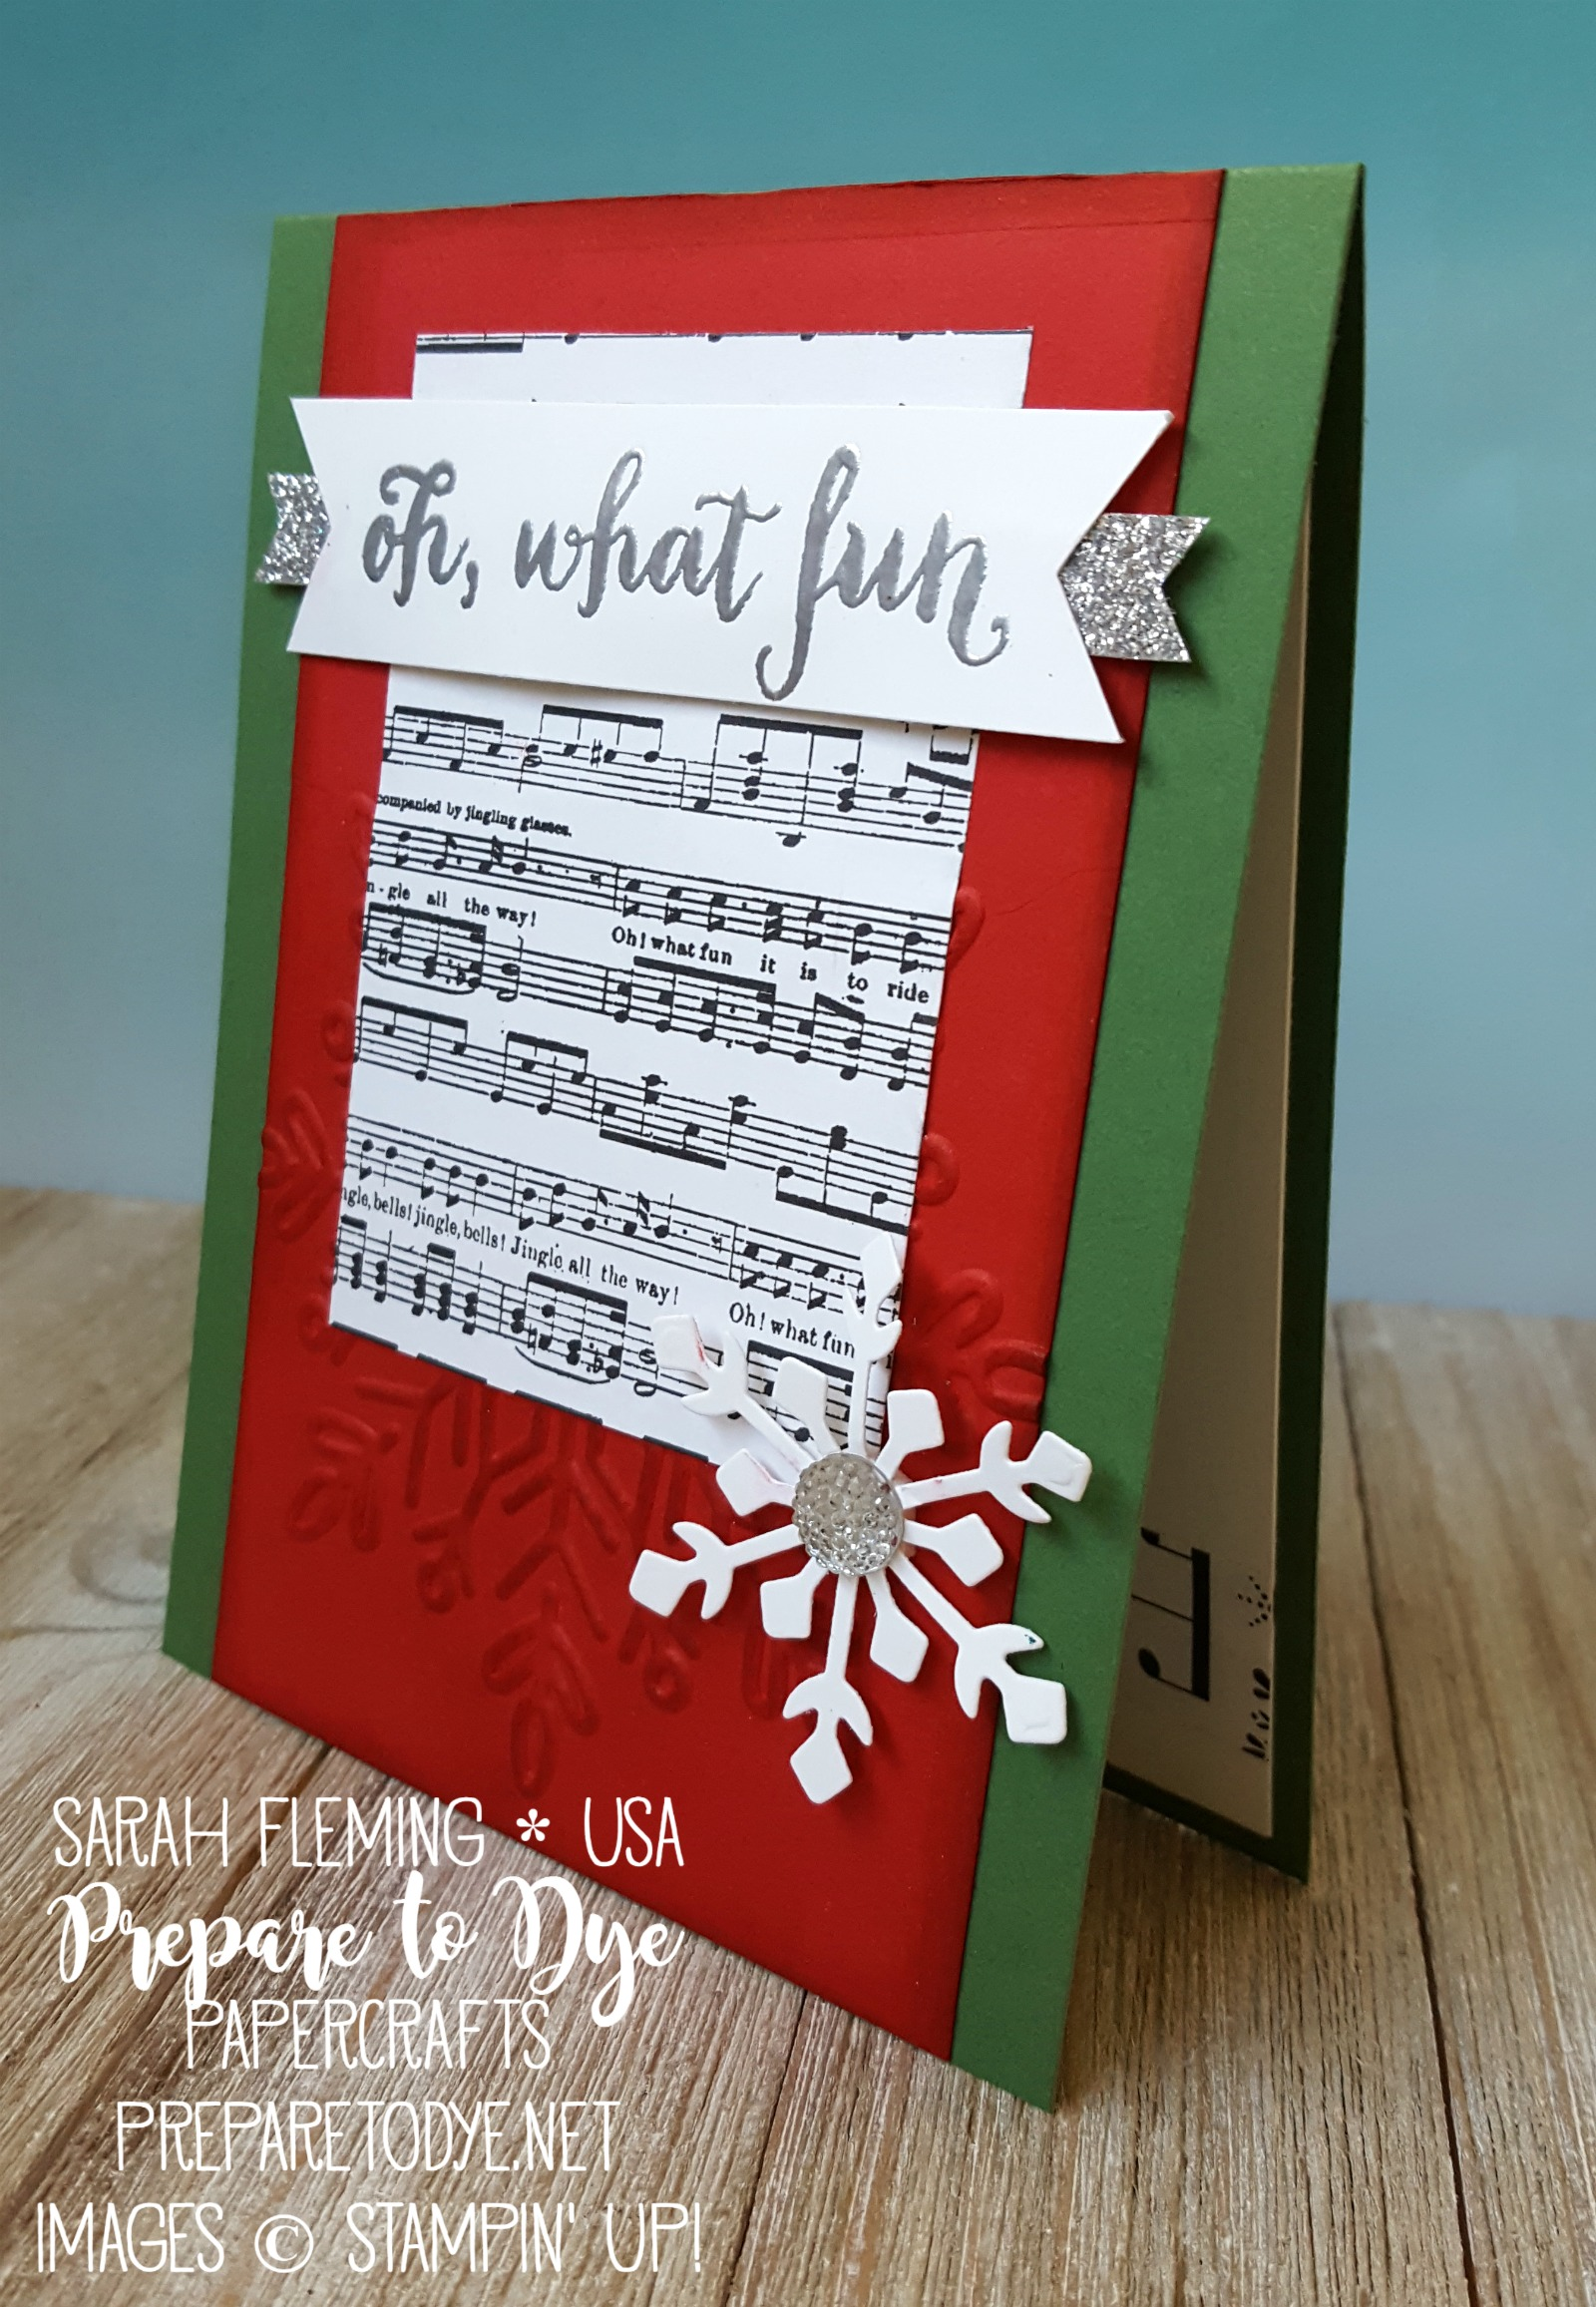 Stampin' Up! handmade Christmas card with Merry Music paper, Winter Wonder embossing folder, Trim Your Stocking thinlits, Oh What Fun stamp set - Sarah Fleming - Prepare to Dye Papercrafts